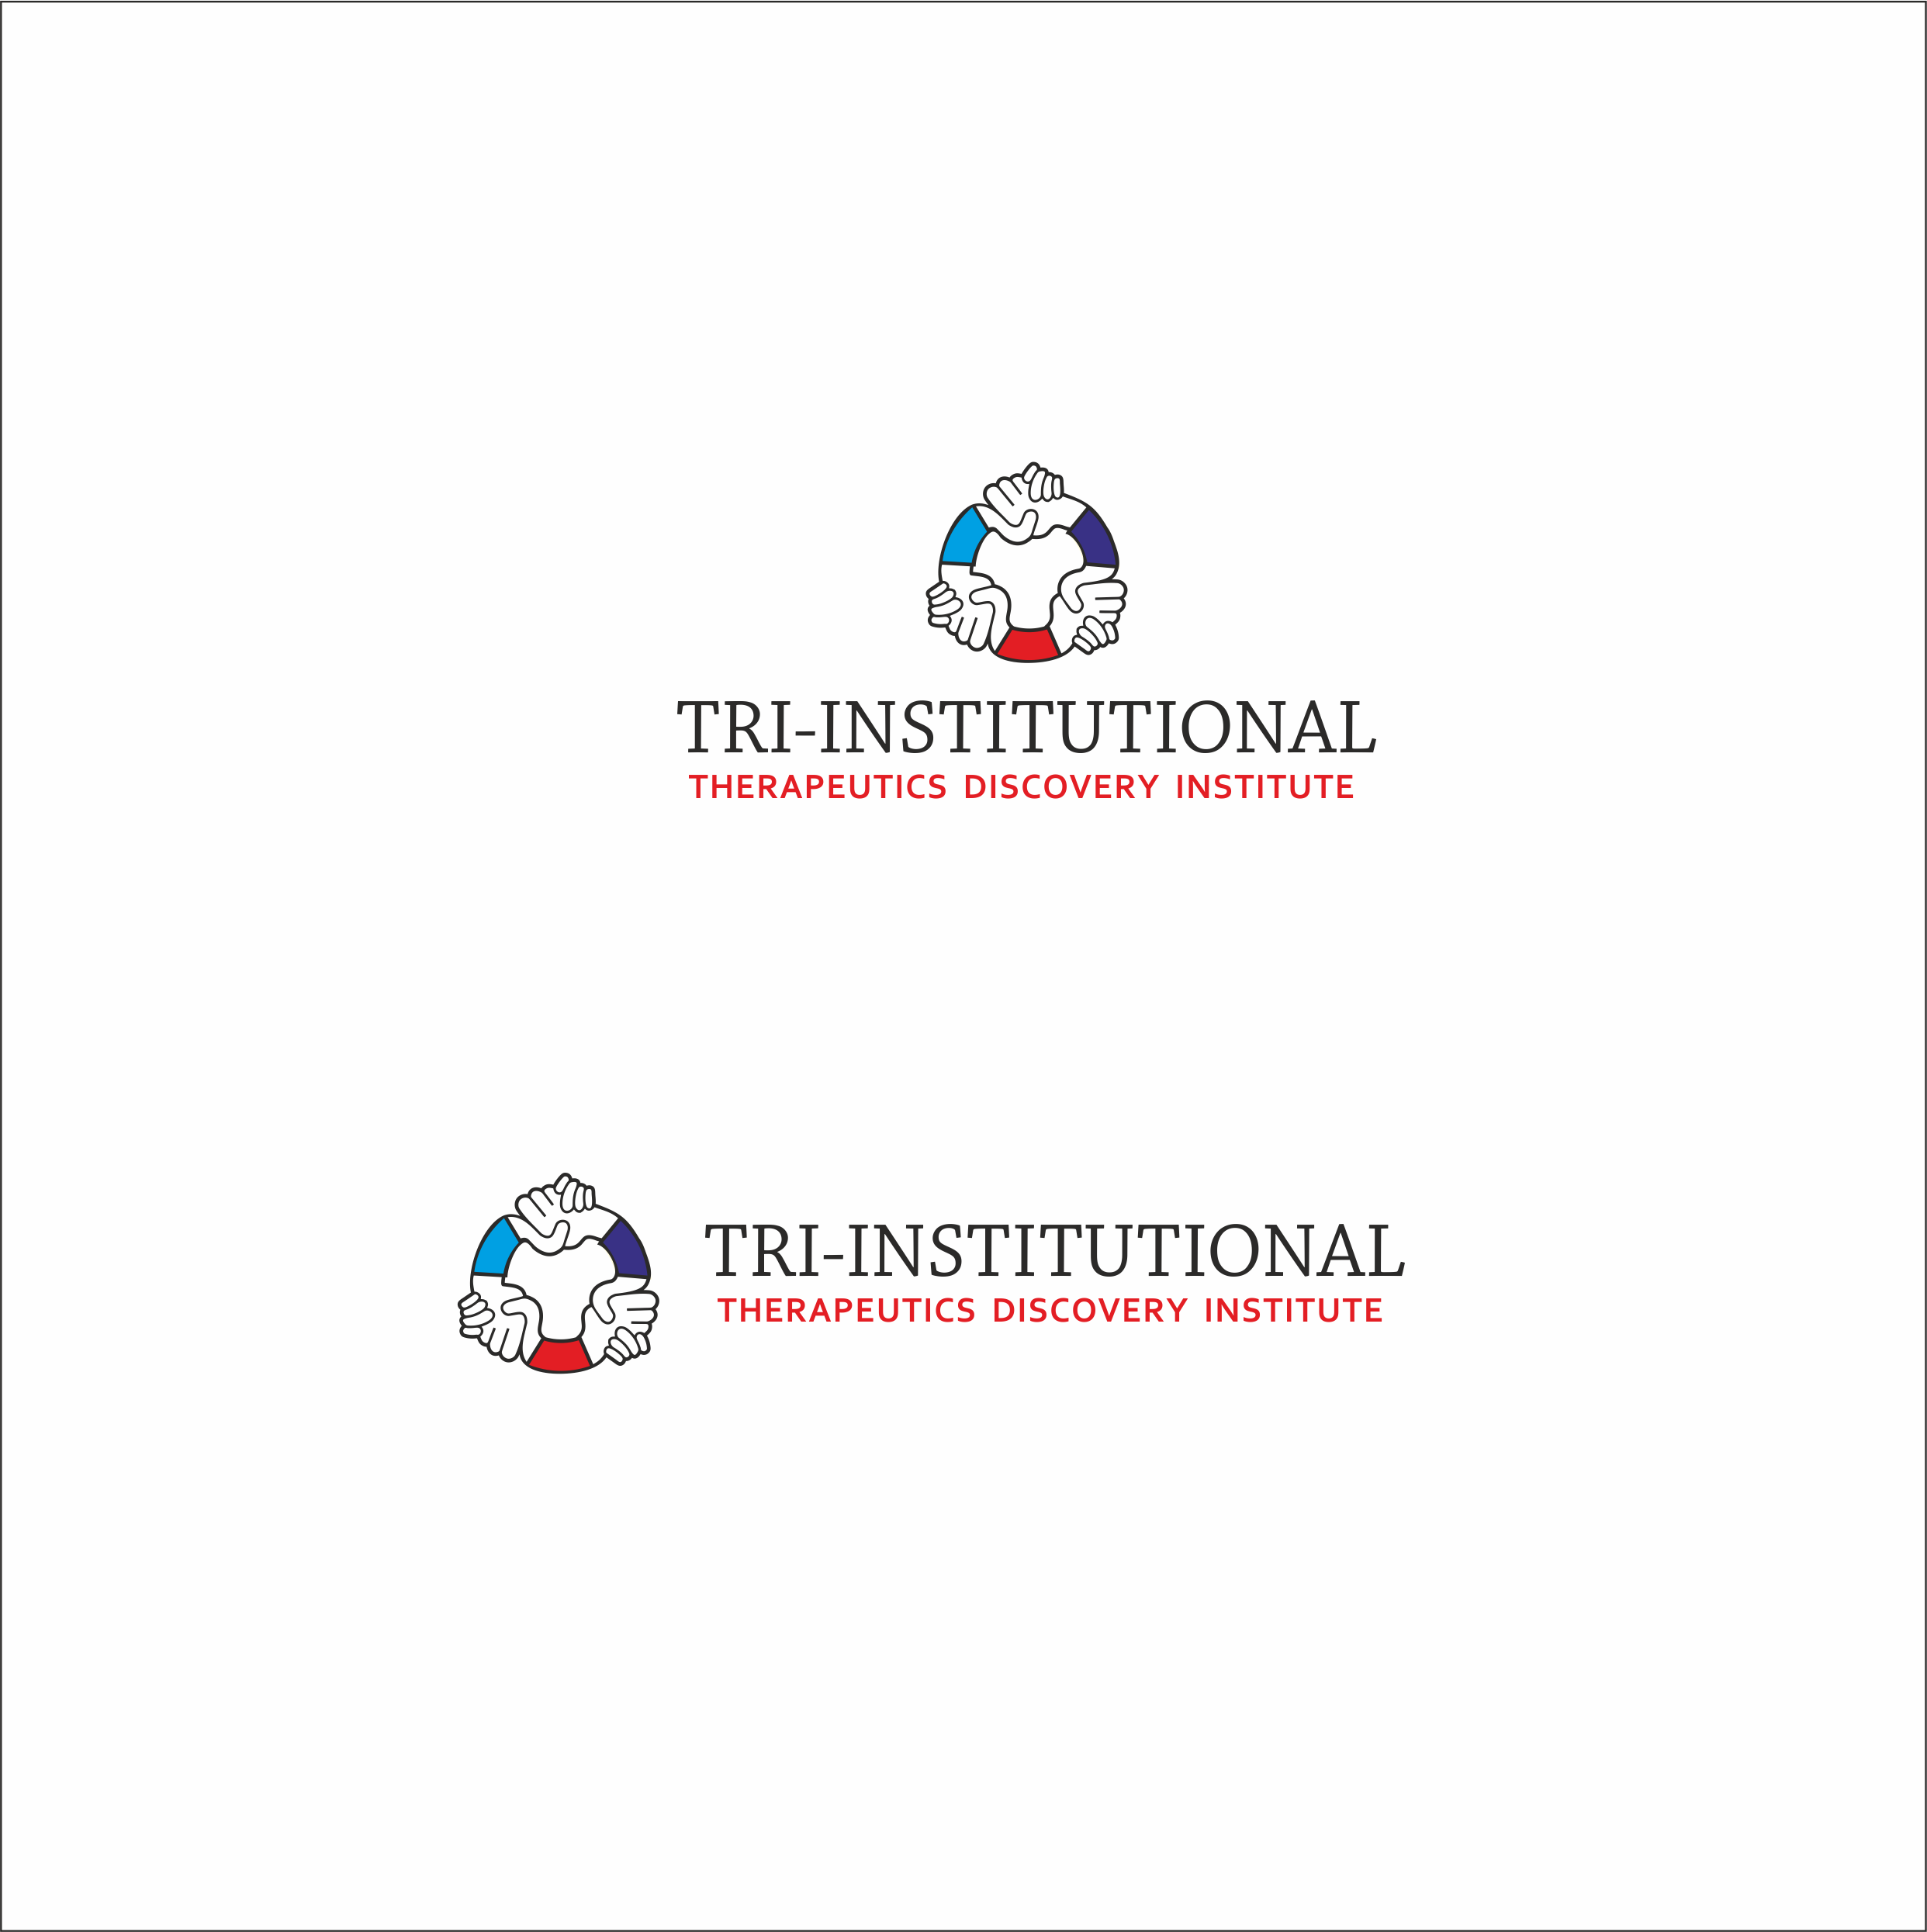 Logo Design by Galina Spirina - Entry No. 248 in the Logo Design Contest Inspiring Logo Design for Tri-Institutional Therapeutics Discovery Institute.